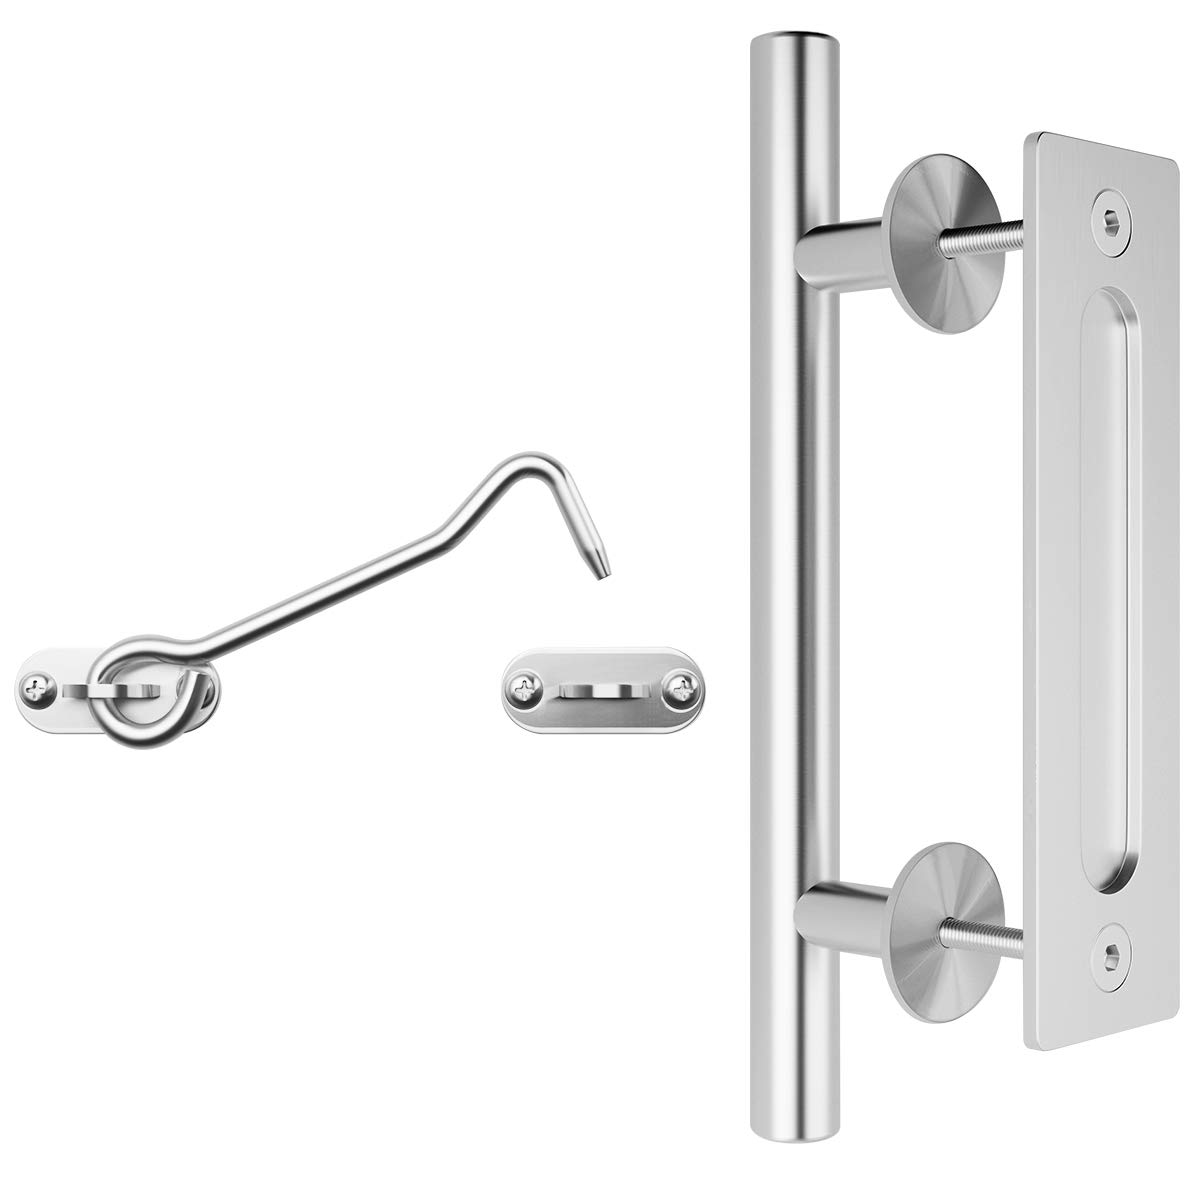 SMARTSTANDARD 12'' Stainless Barn Door Handle Set with Latch Lock Hook, Flush and Pull Two-Side Rustic Gate Door Handle for Garages Furniture Shed Doors, Round